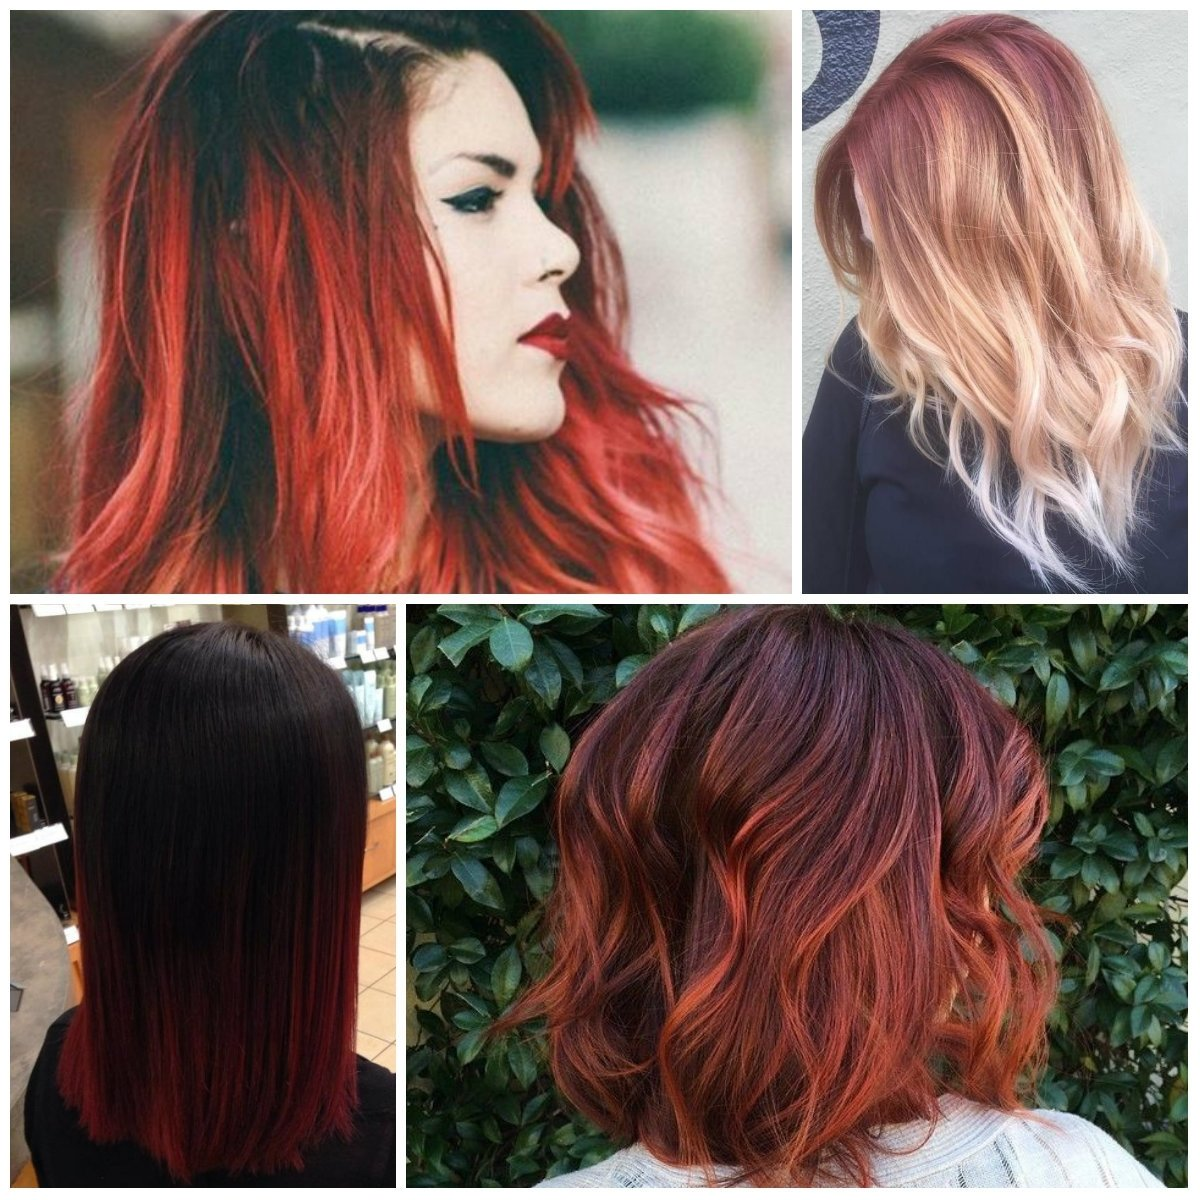 10 Gorgeous Different Shades Of Red Hair Color Ideas red page 5 best hair color ideas trends in 2017 2018 2020